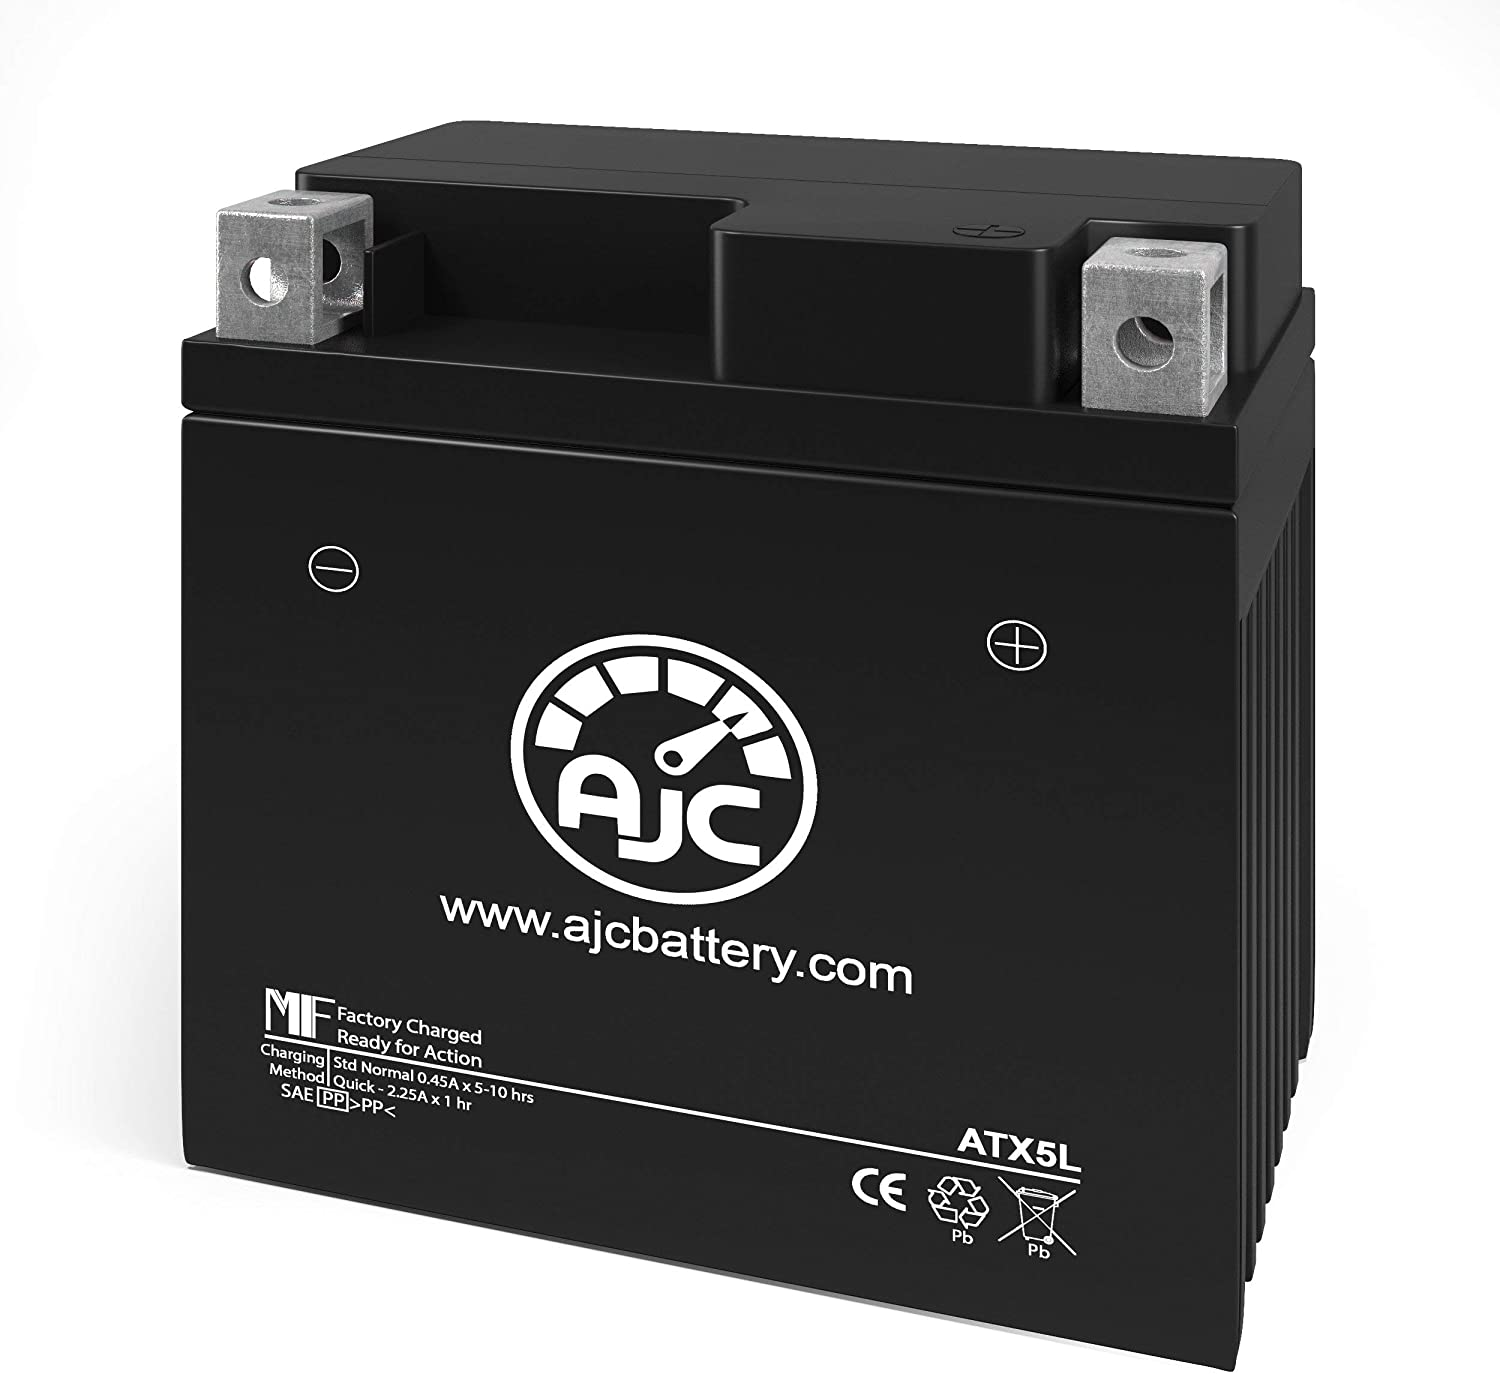 Arctic Cat 90 2X4 89CC ATV Replacement Battery (2004) - This is an AJC Brand Replacement